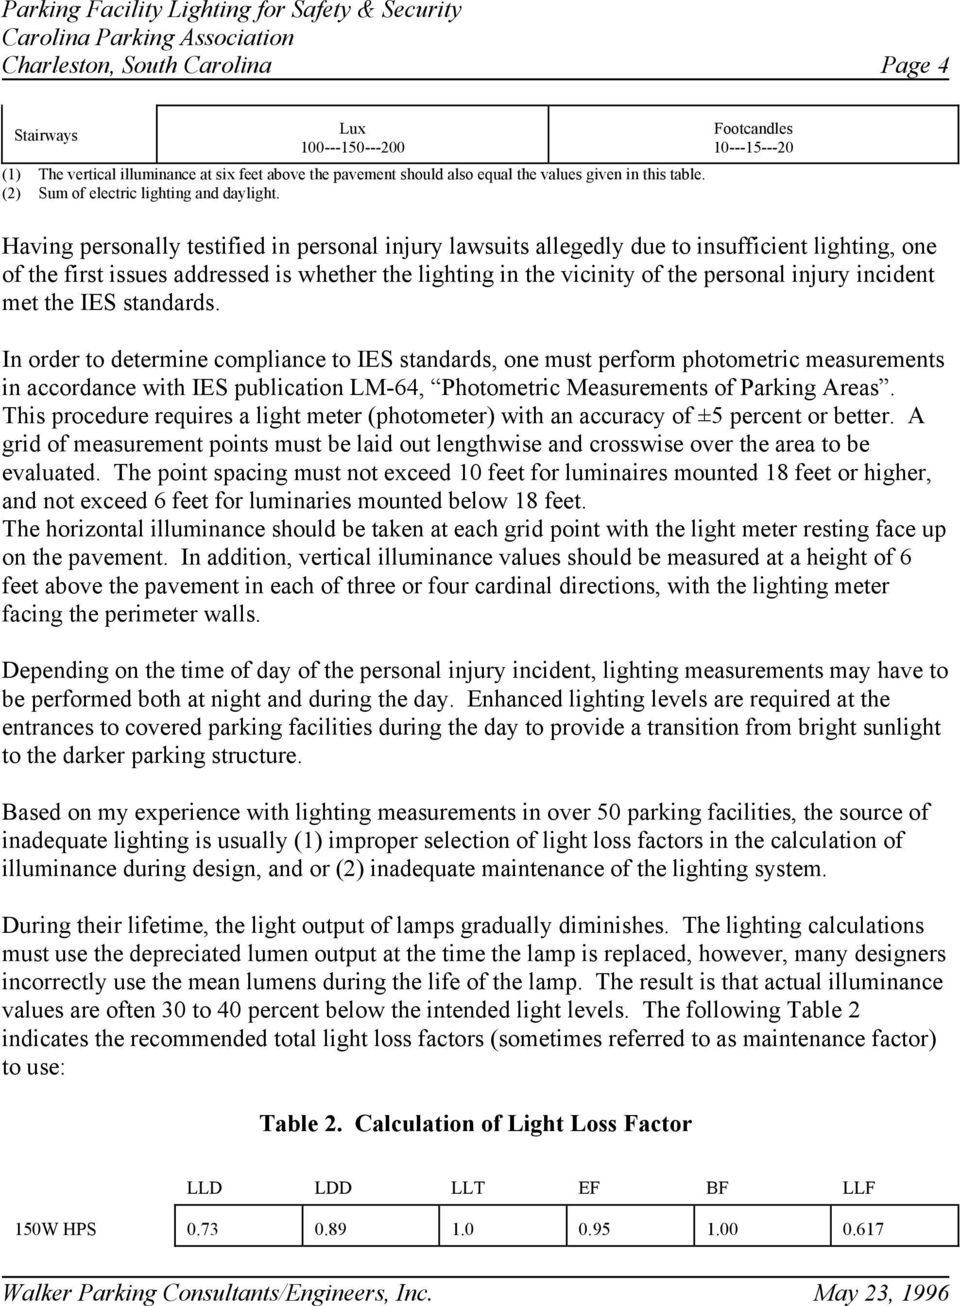 PARKING FACILITY LIGHTING FOR SAFETY AND SECURITY PDF Free